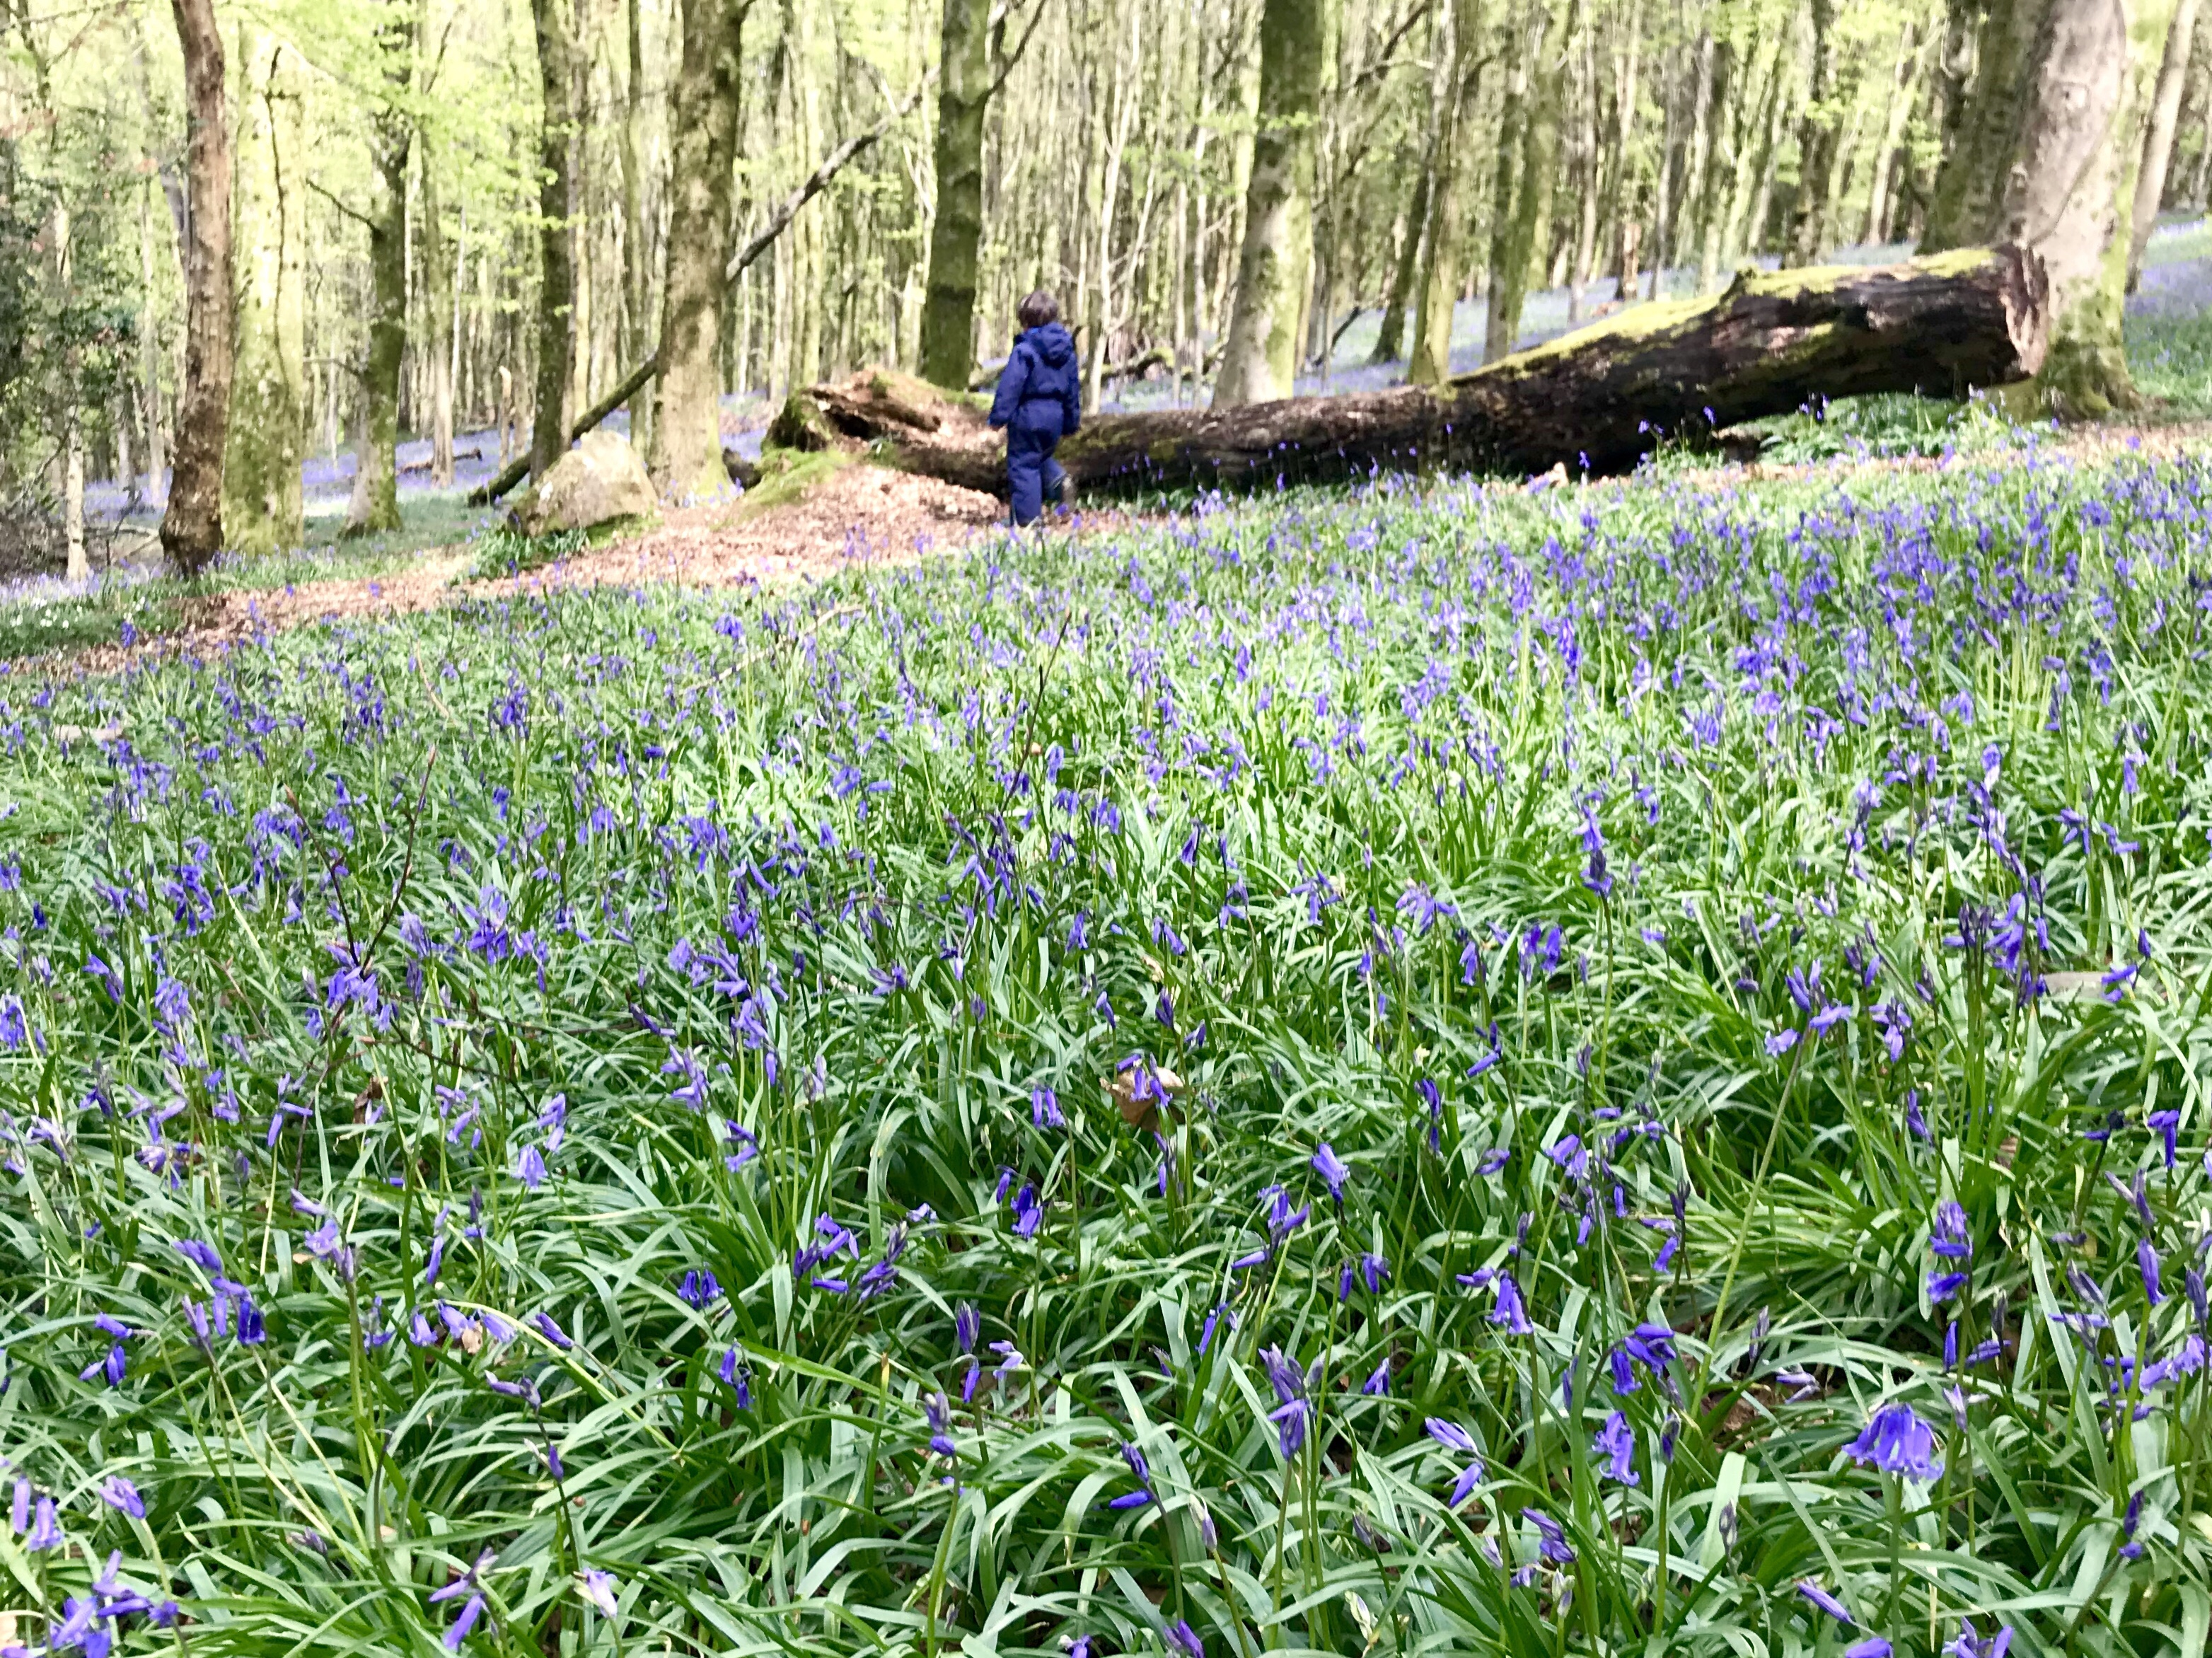 The bluebells are out at Coed y Wenallt Cardiff Cardiff Mummy